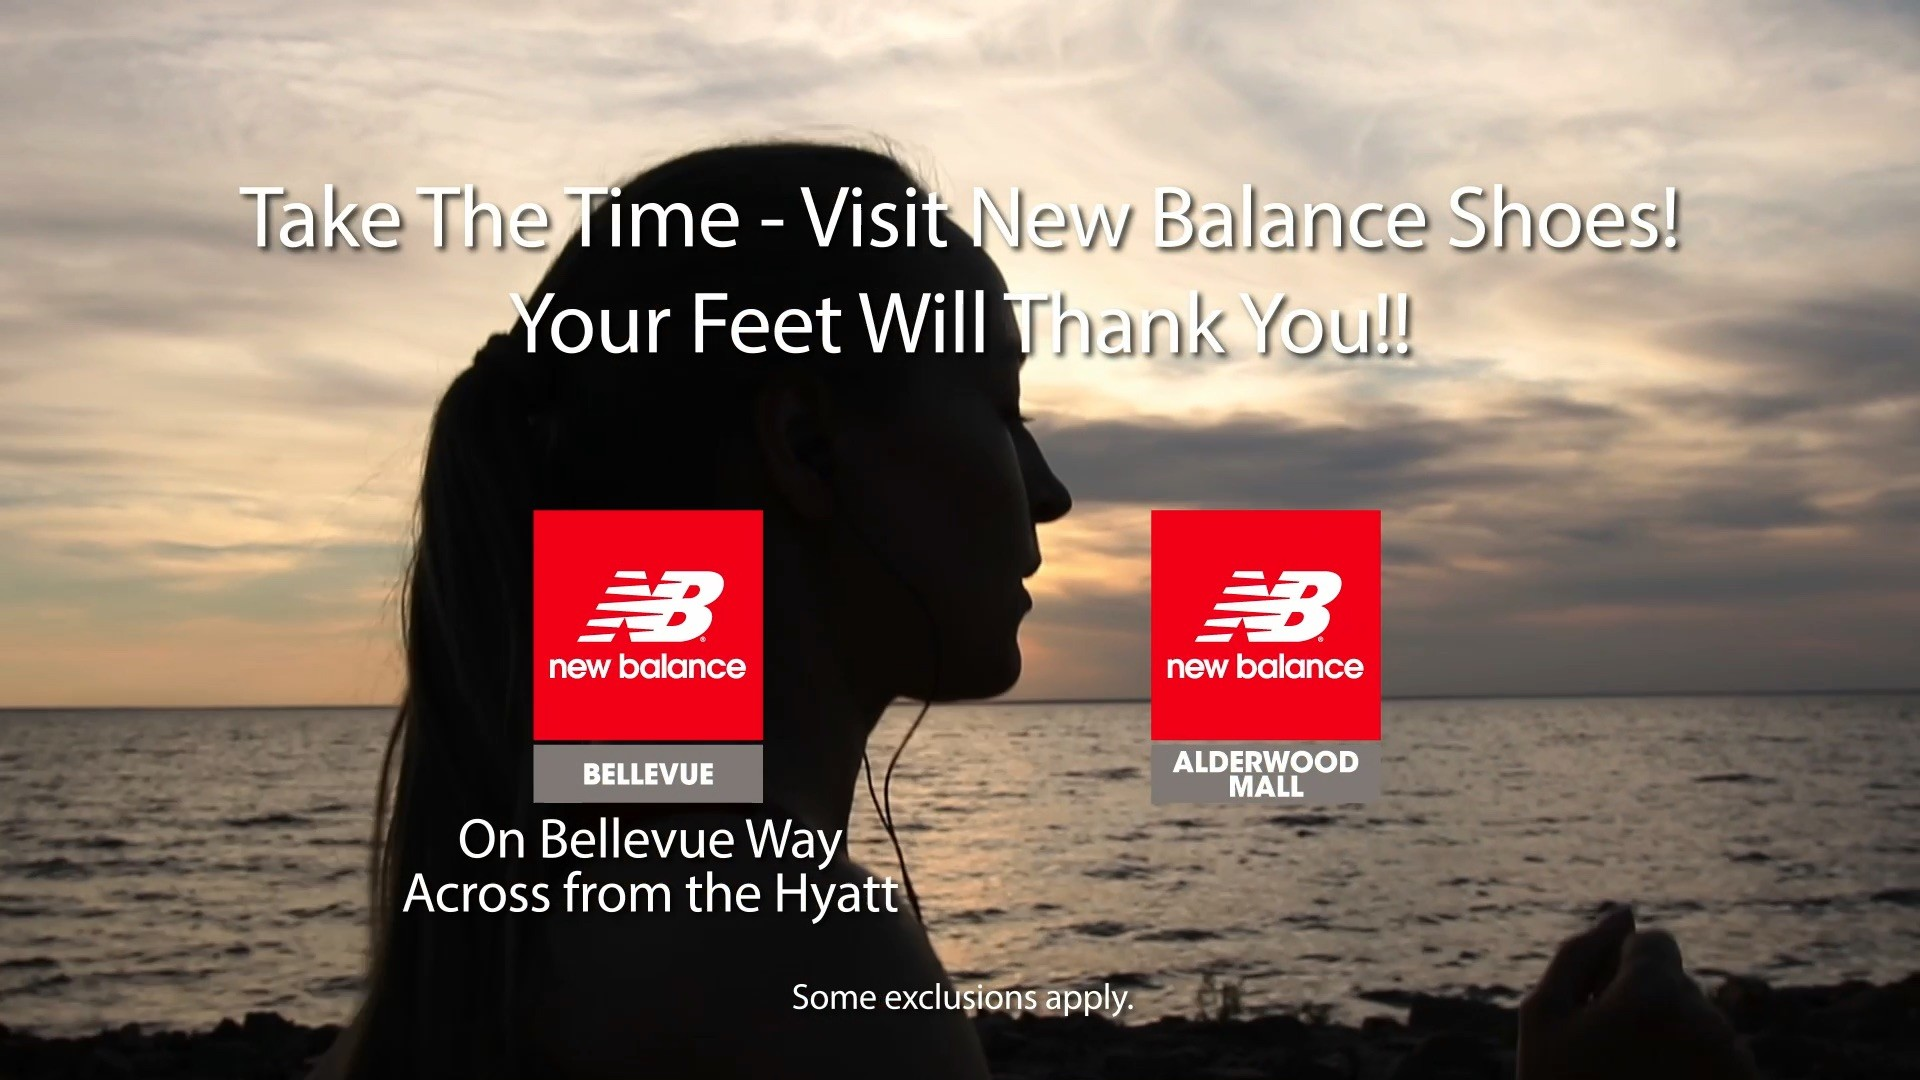 New Balance: The Difference